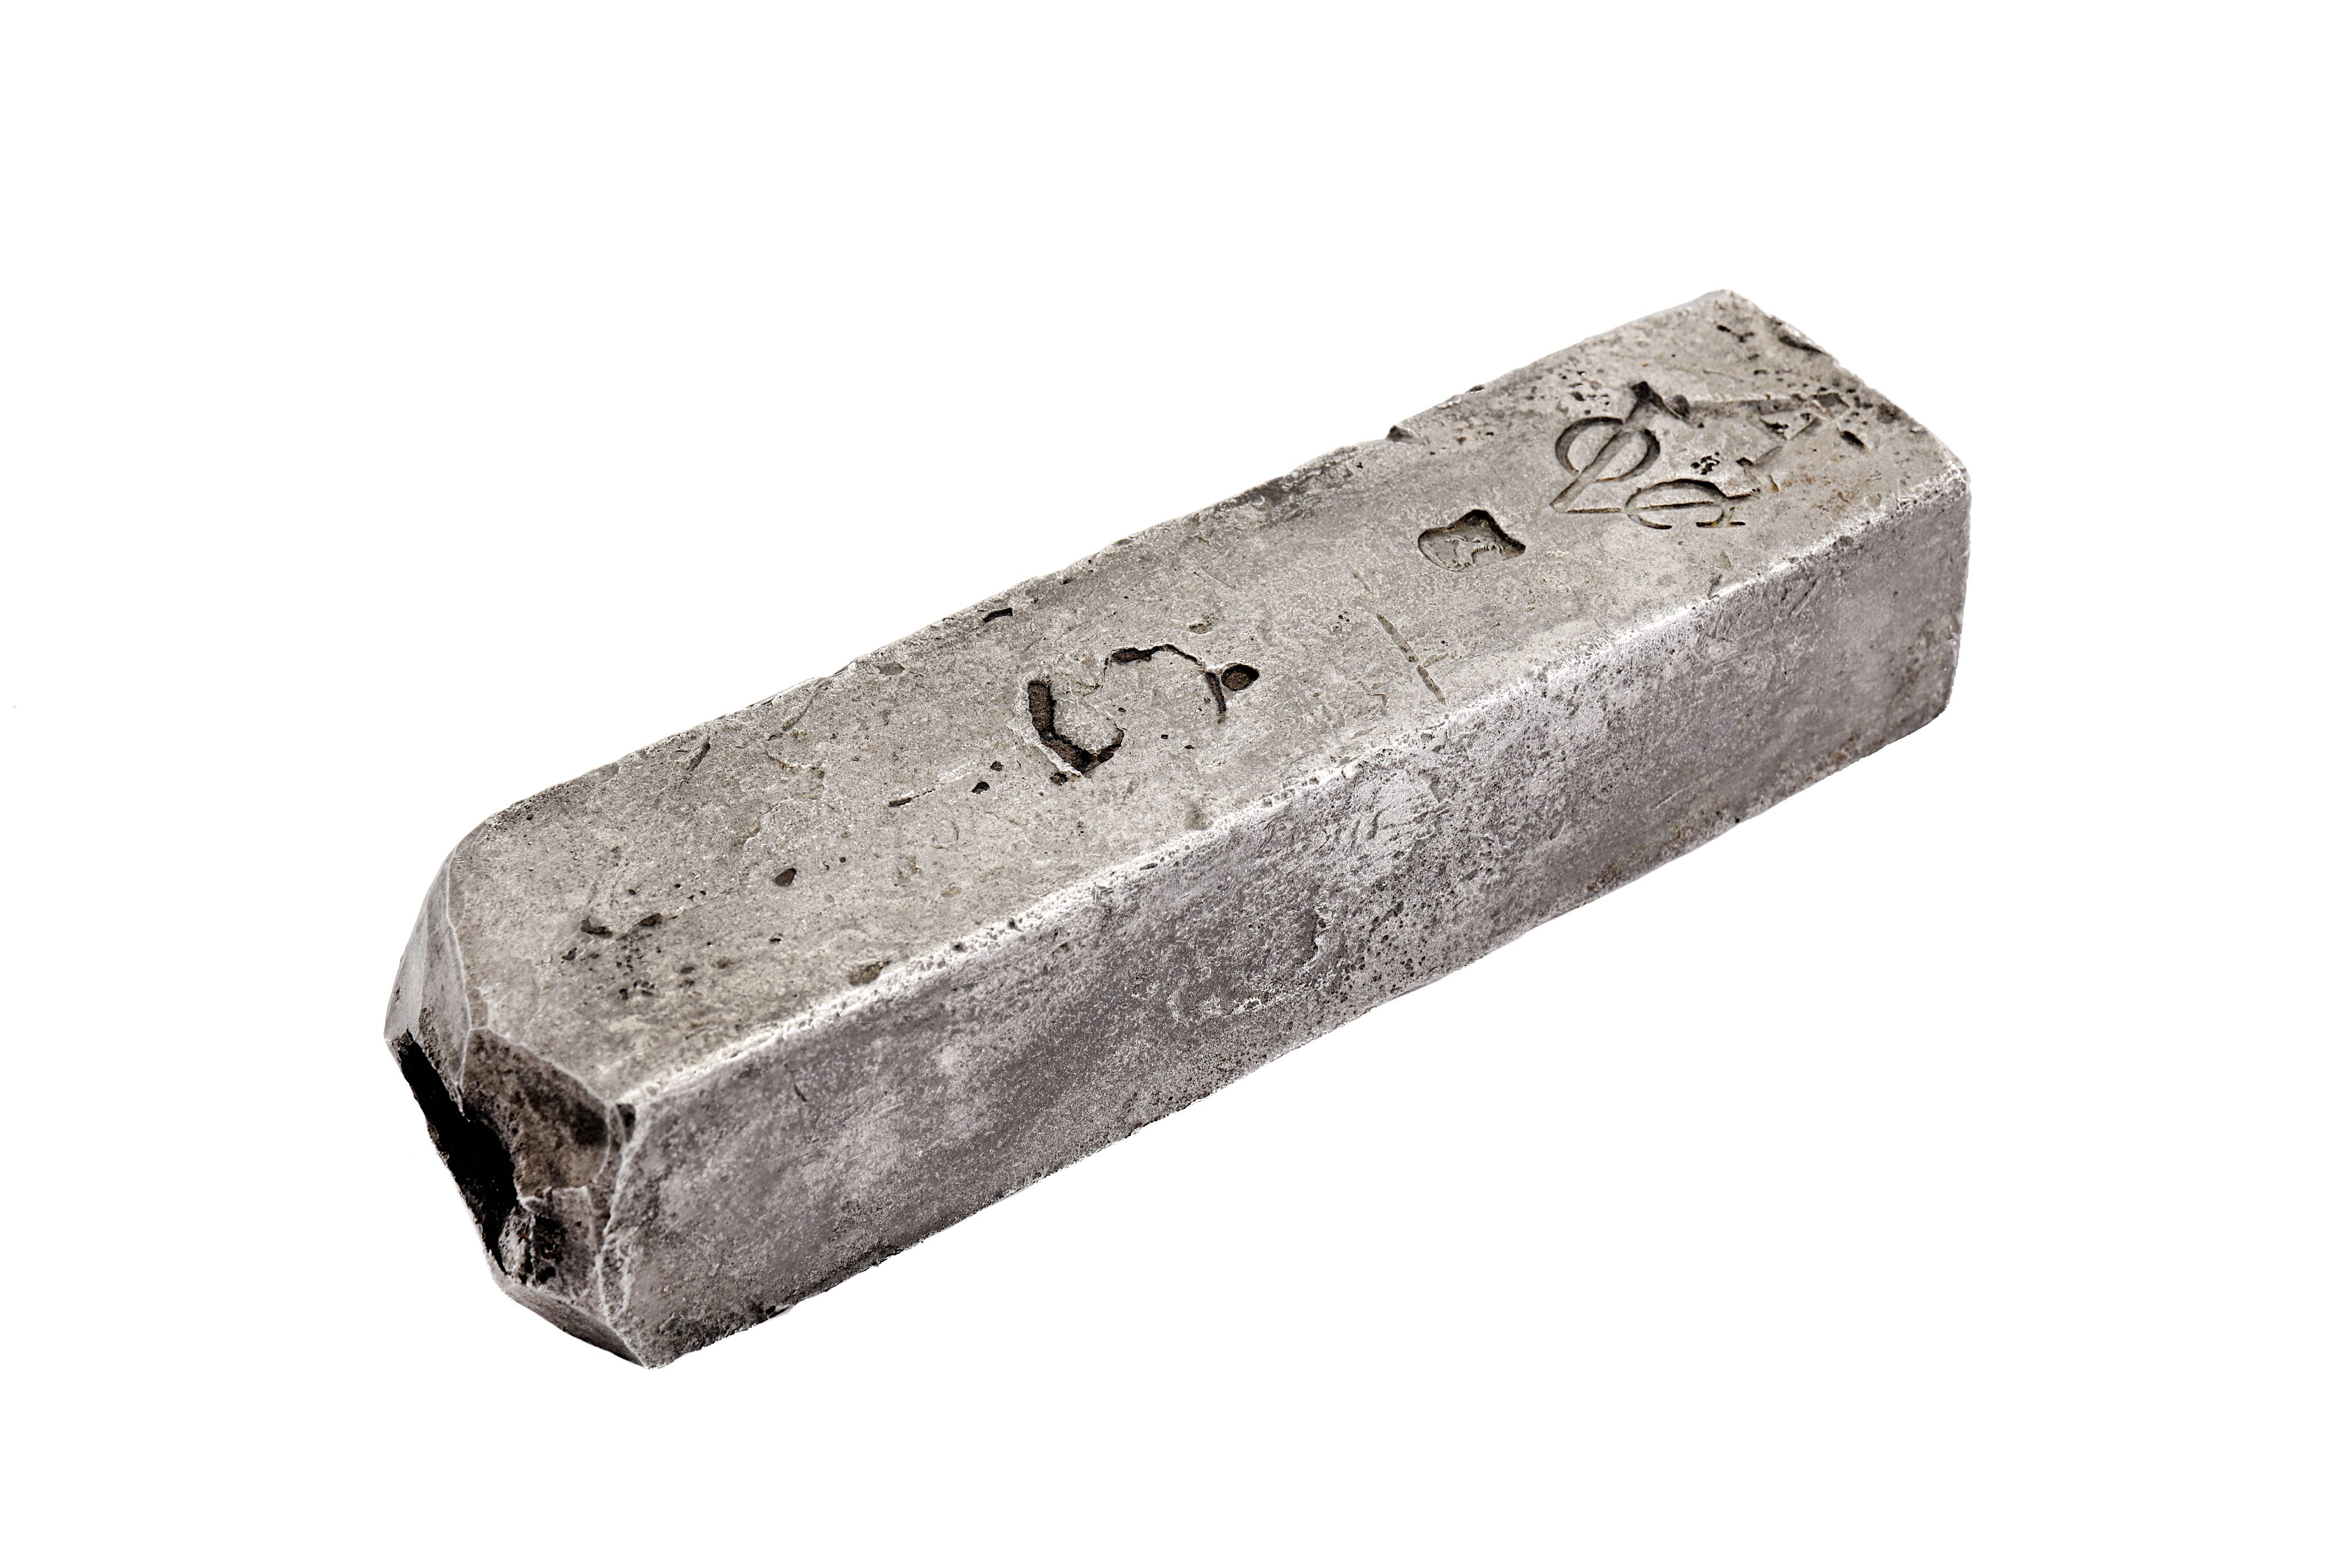 A DUTCH EAST INDIA COMPANY (V.O.C.) SILVER INGOT FROM THE ROOSWIJK CARGO STAMPED WITH THE MARK OF TH